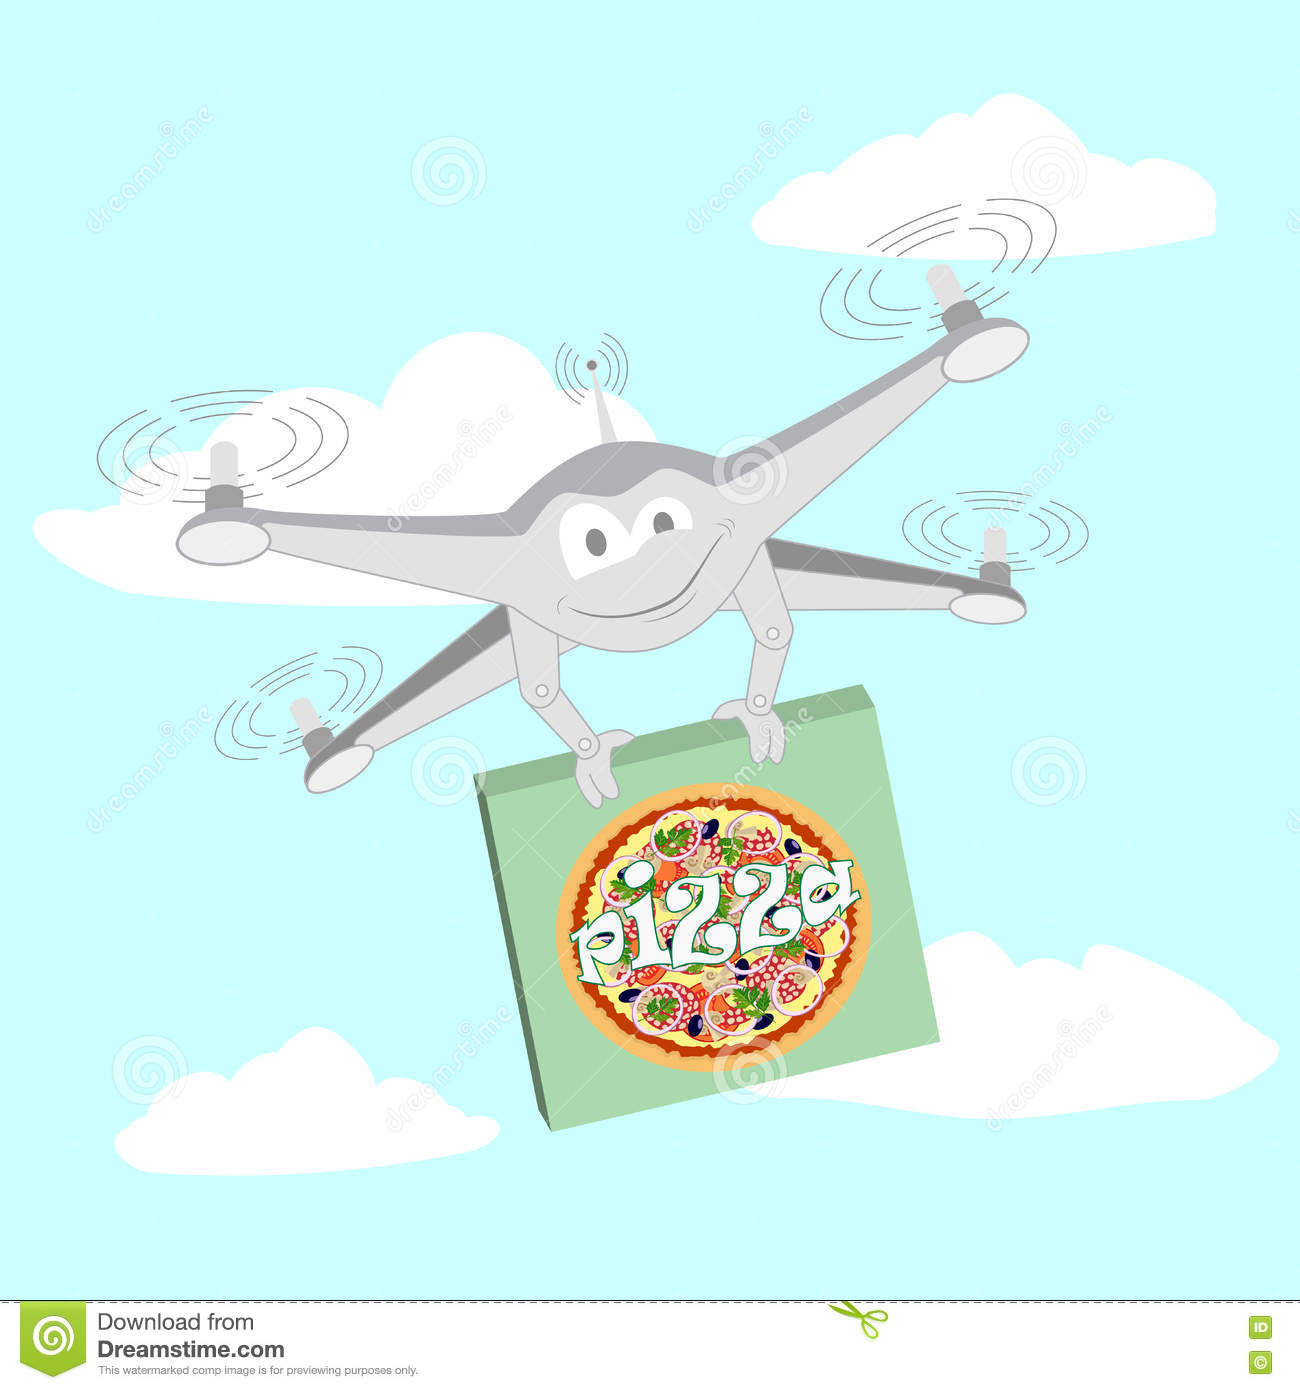 radio control drone with camera with Stock Illustration Funny Drone Pizza Video Camera Series Cartoon Drones Image74879064 on 381983268506 together with Anki Overdrive Race Track additionally X6sw Wifi Fpv Toys Camera Rc Helicopter Drone Quadcopter Gopro Professional Drones With Camera Hd Vs Drone in addition Stock Illustration Funny Drone Pizza Video Camera Series Cartoon Drones Image74879064 further Rover Revolution App Controlled Off Road Spy Vehicle.